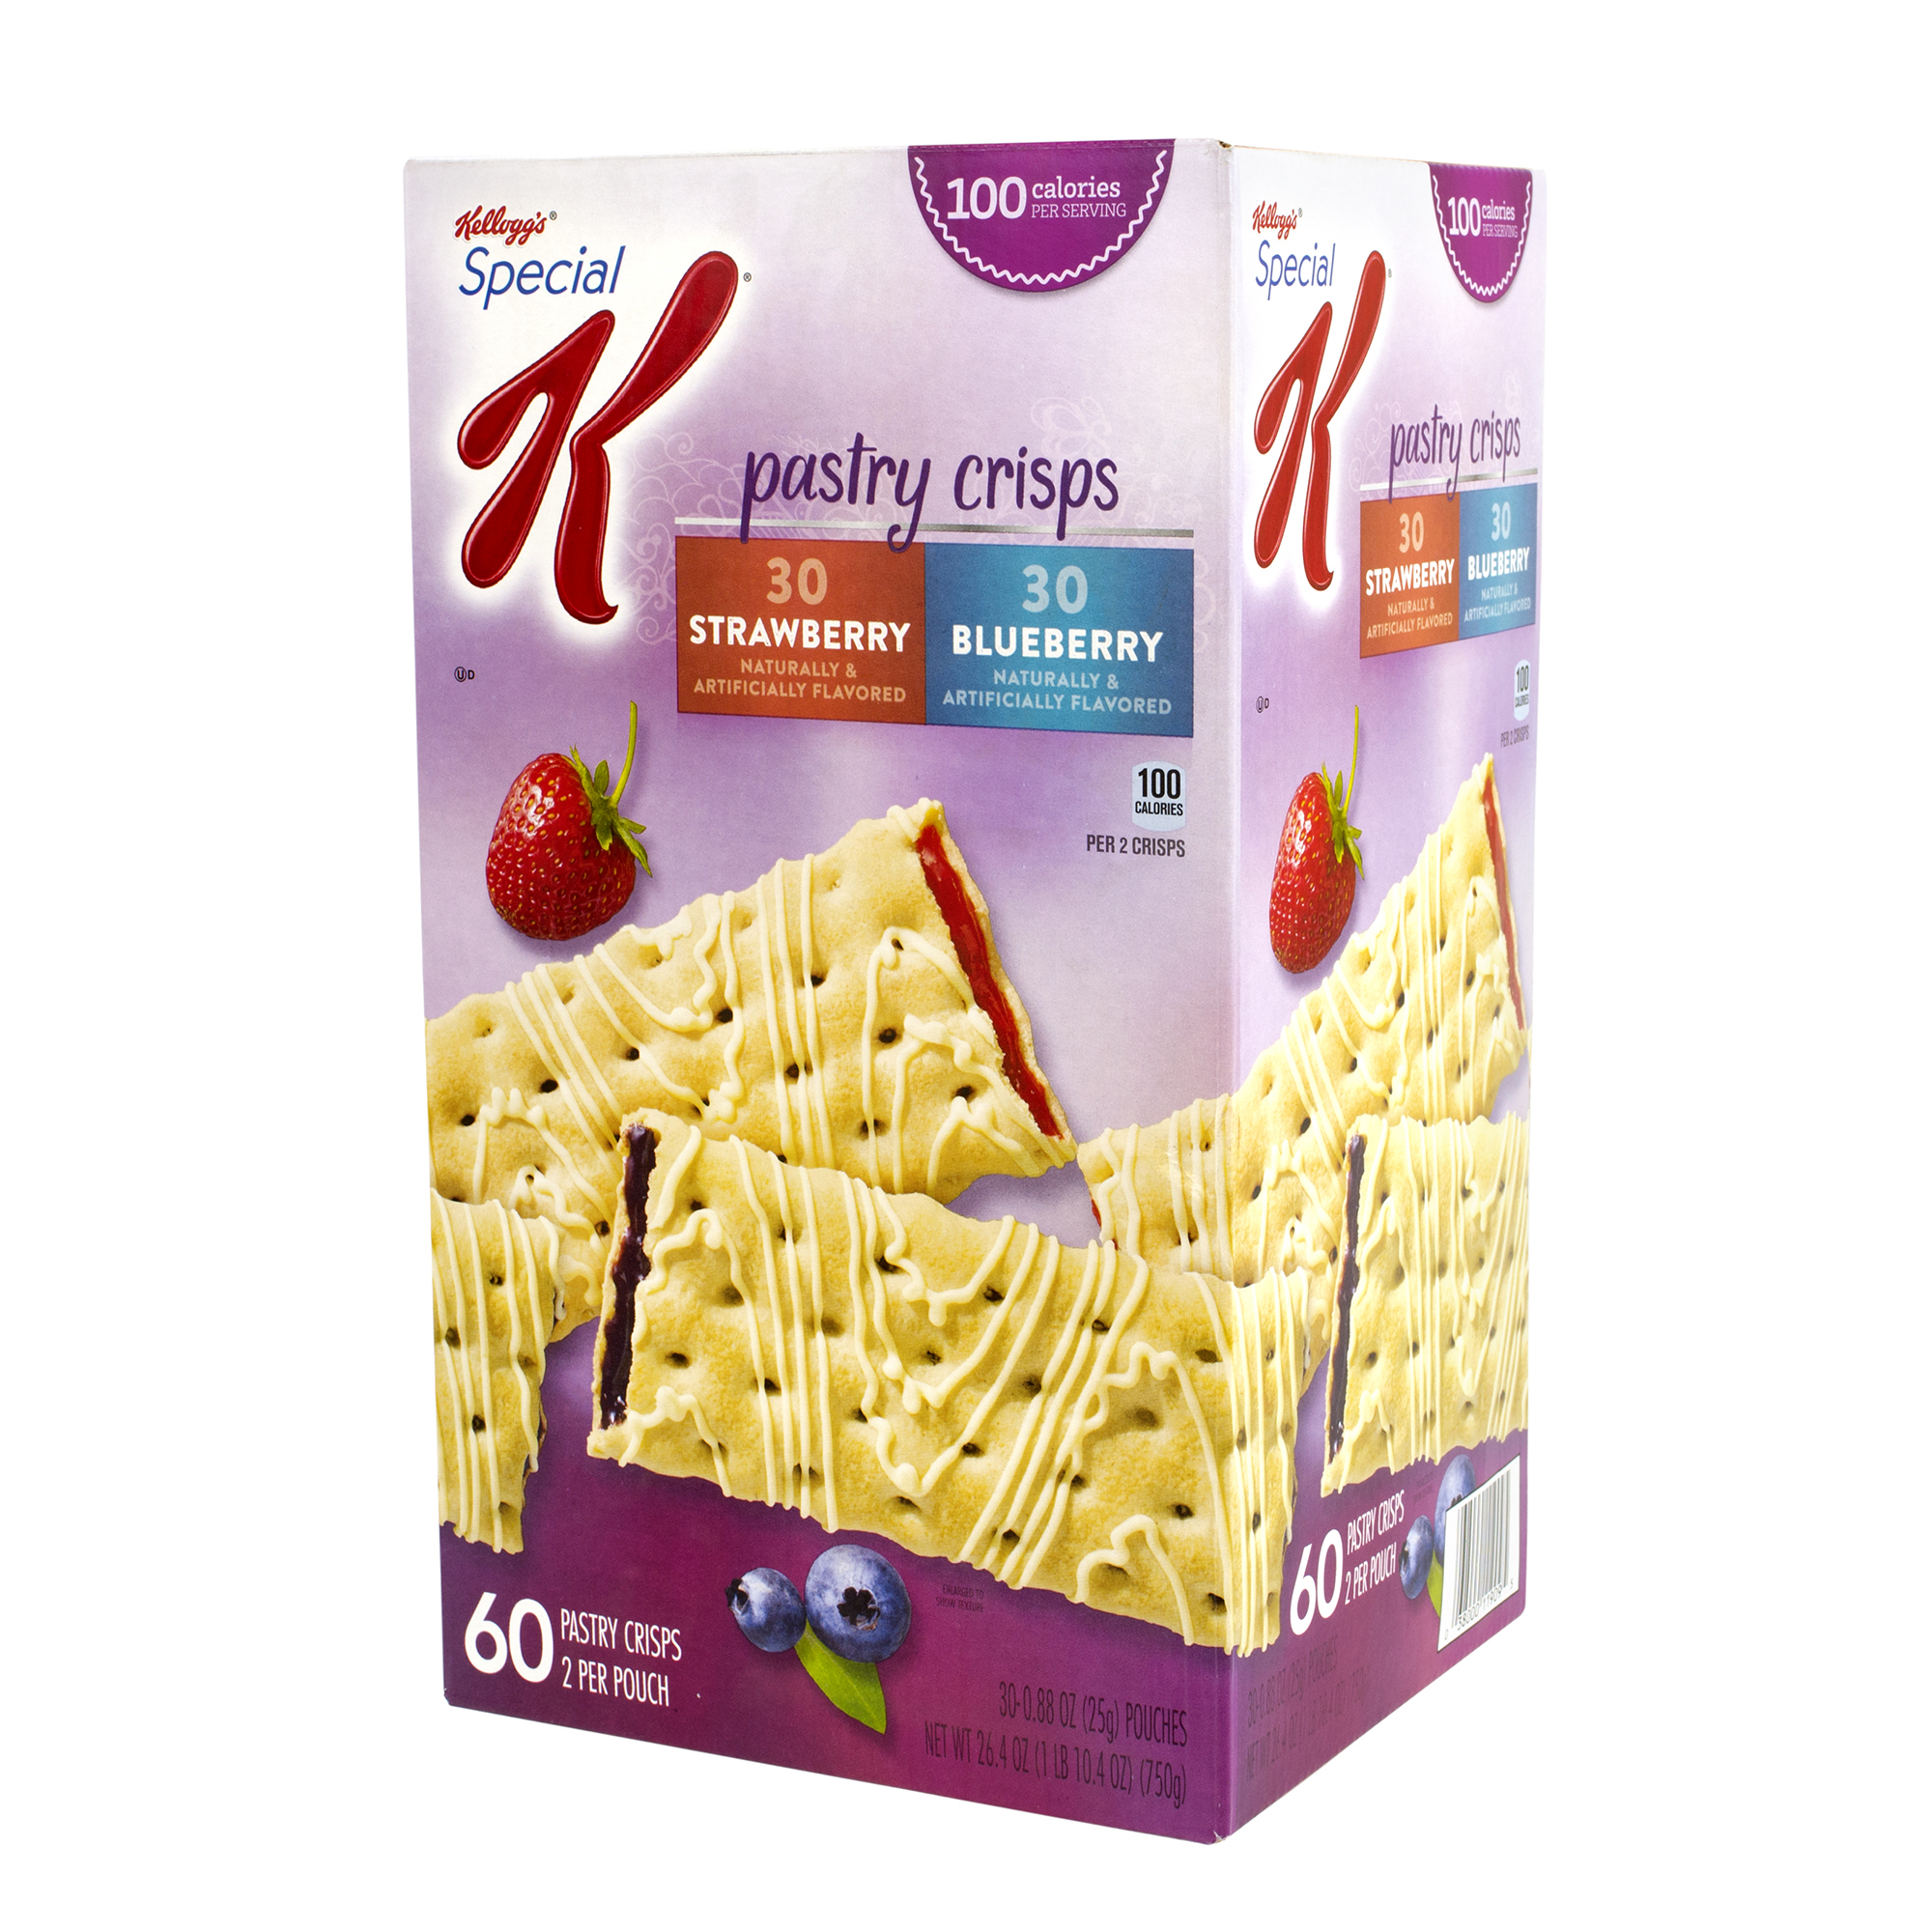 SPECIAL K Pastry Crisps Blueberry and Strawberry, 72 Count